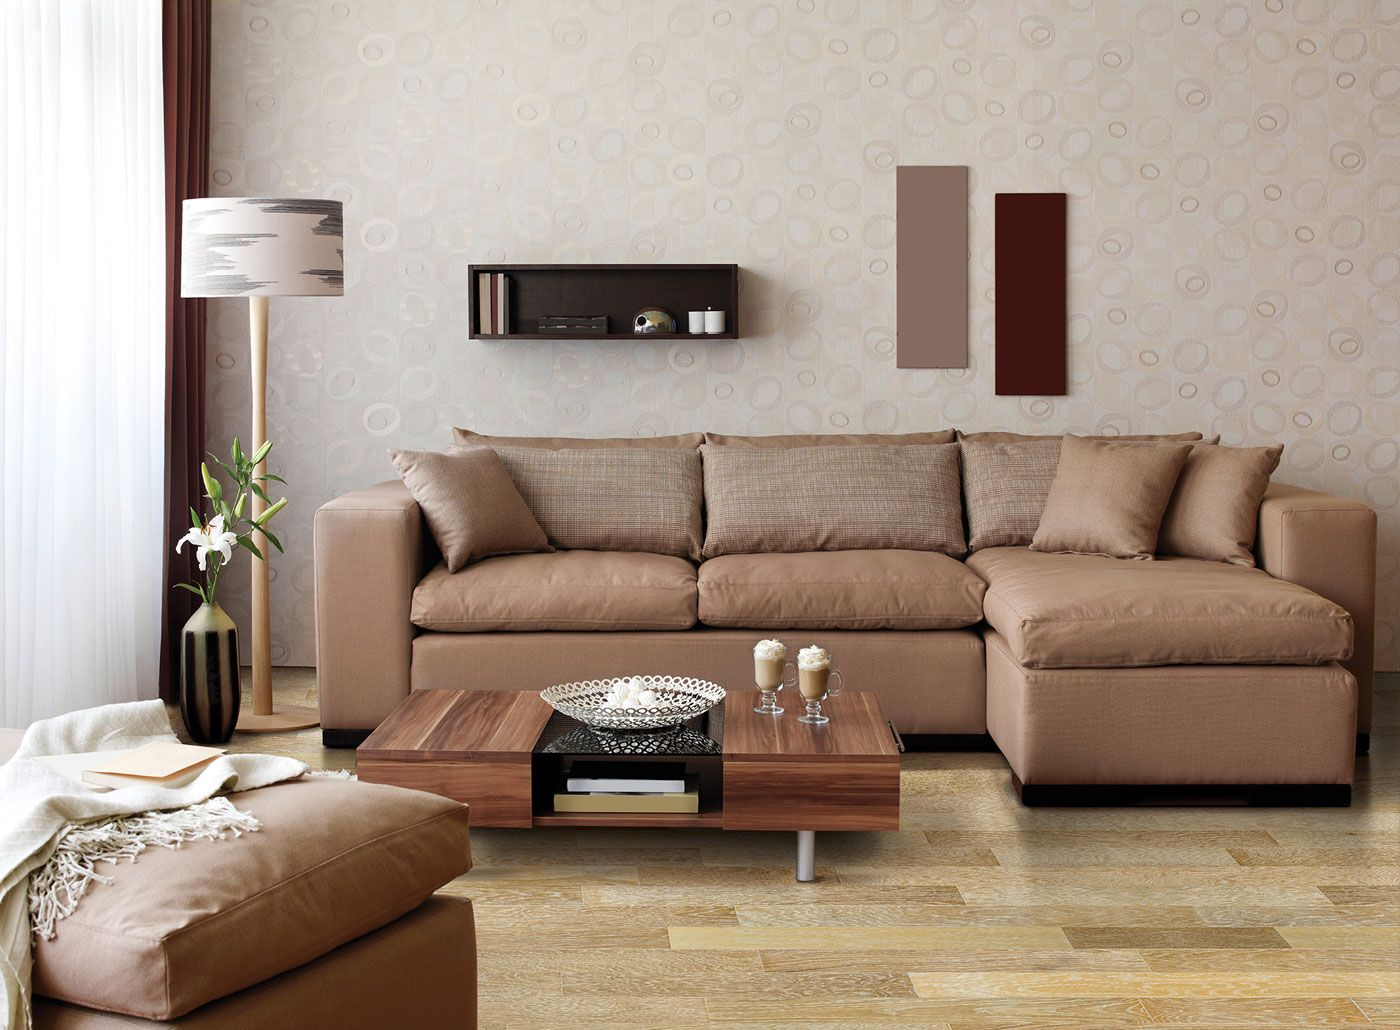 Foothills White Oak Tumbled Pebble Furniture How To Clean Furniture Decor